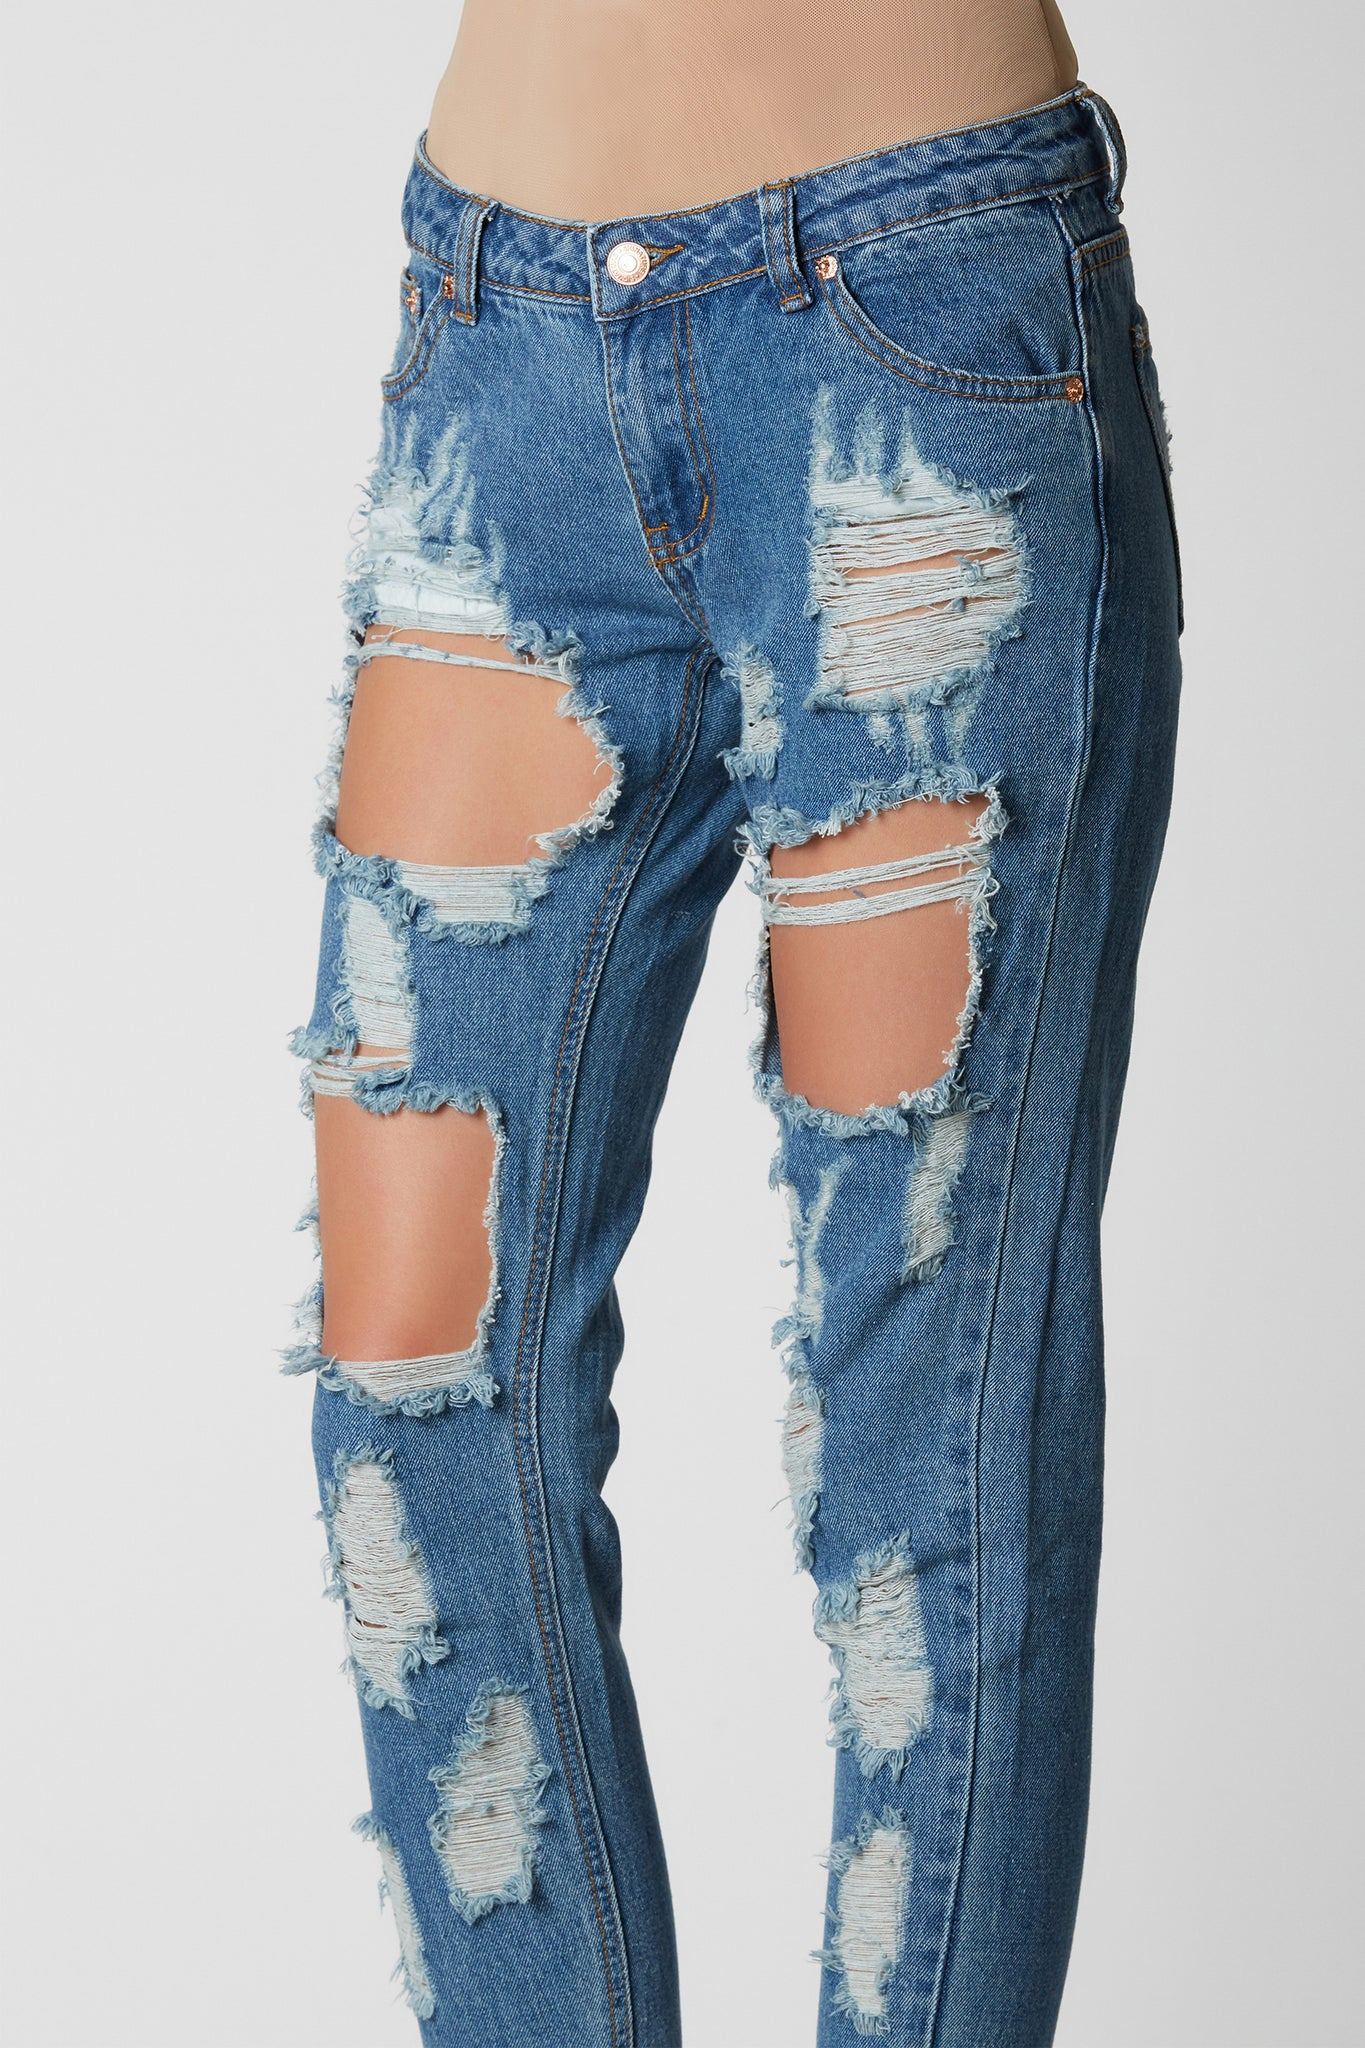 Rock N' Roll Distressed Jeans